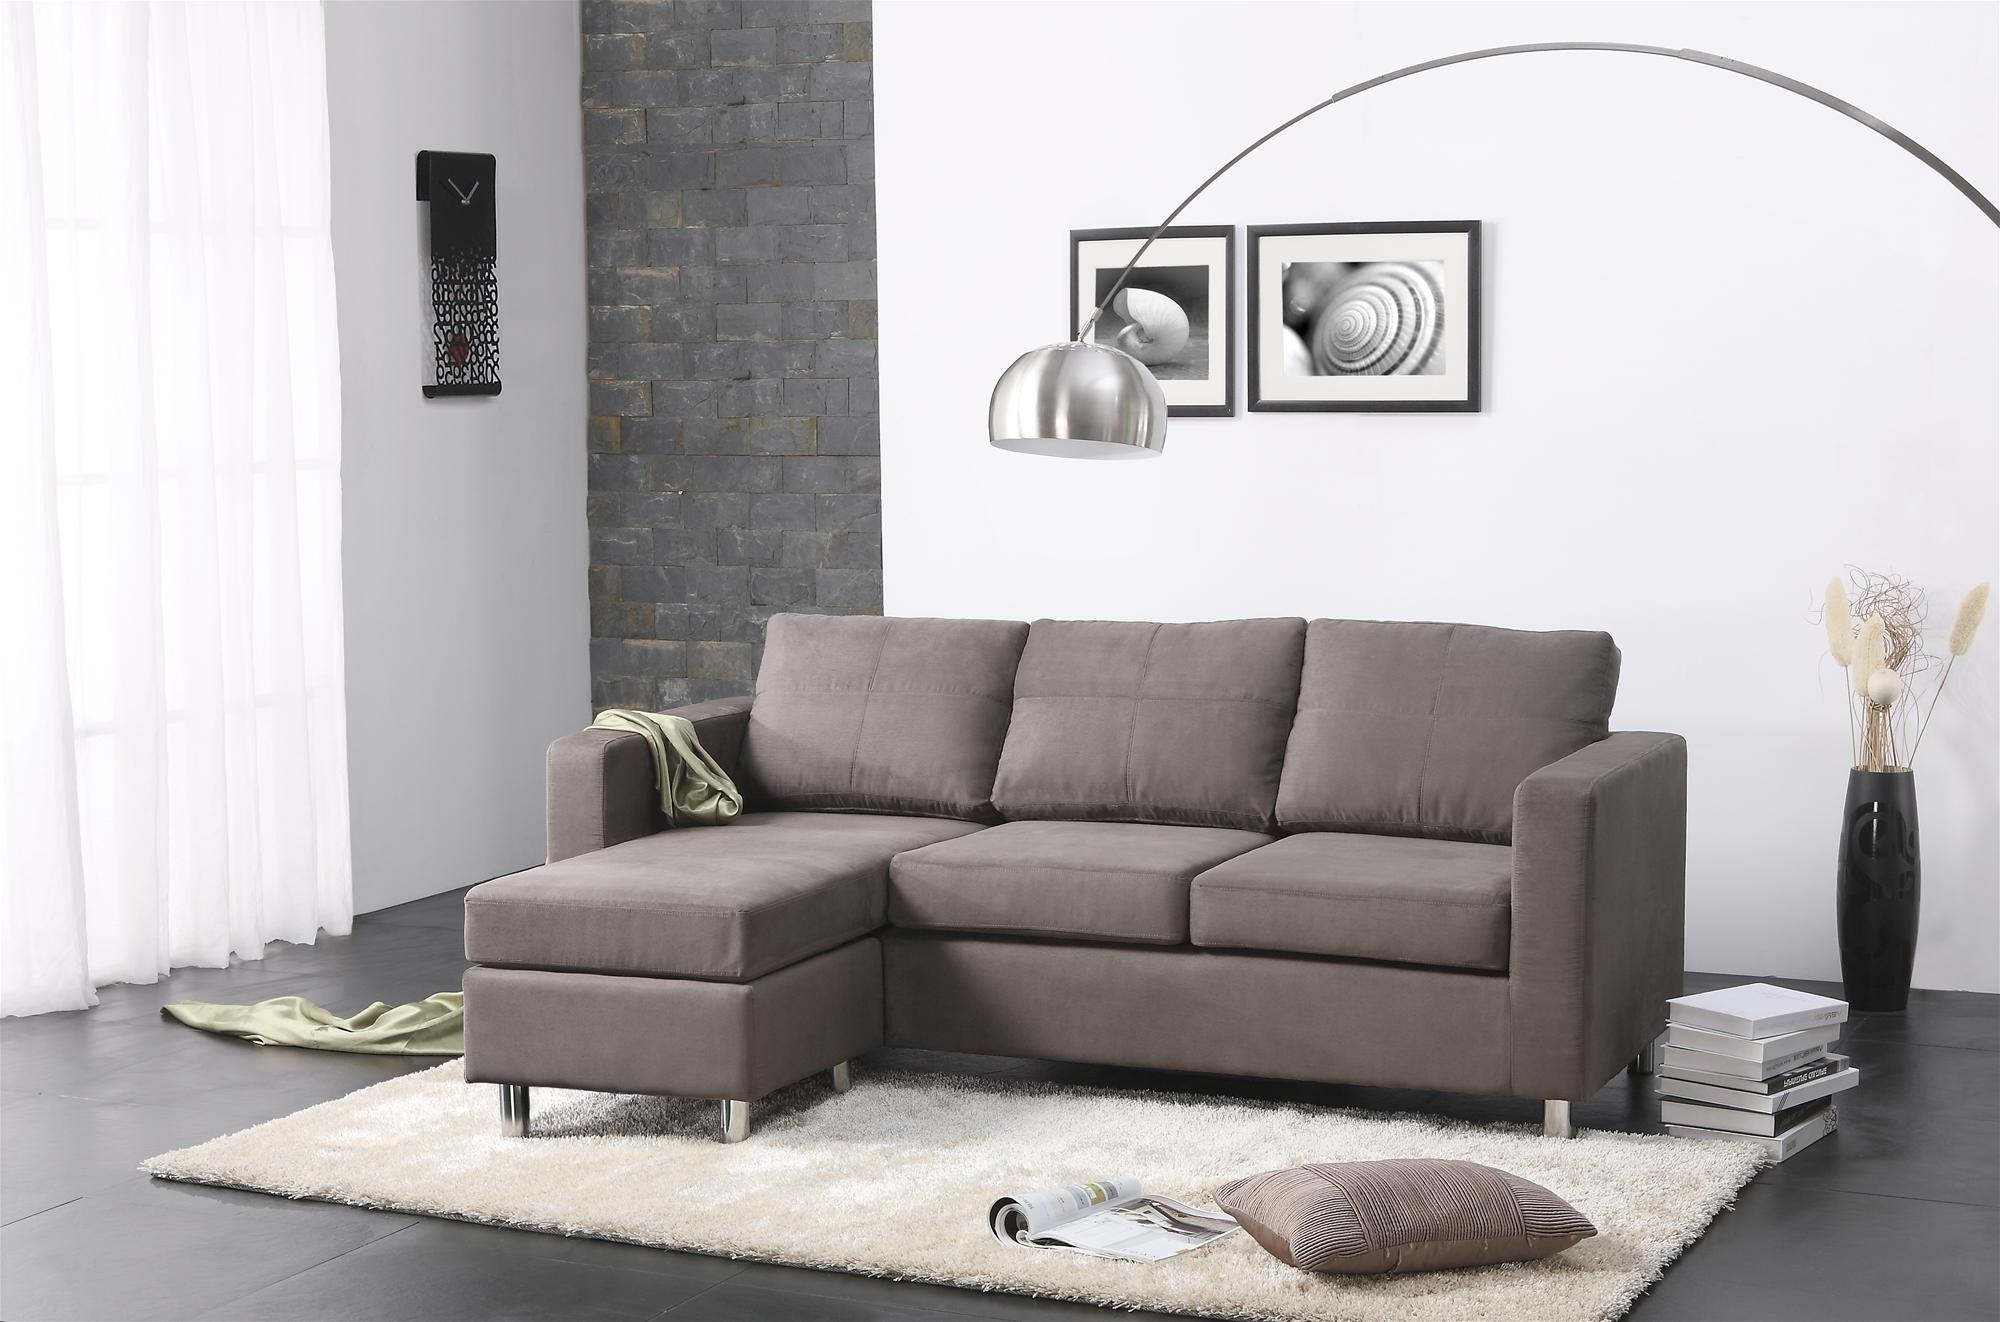 2019 Sectional Sofas For Small Rooms Within Fancy Sectional Sofa For Small Spaces 46 For Contemporary Sofa (View 1 of 20)